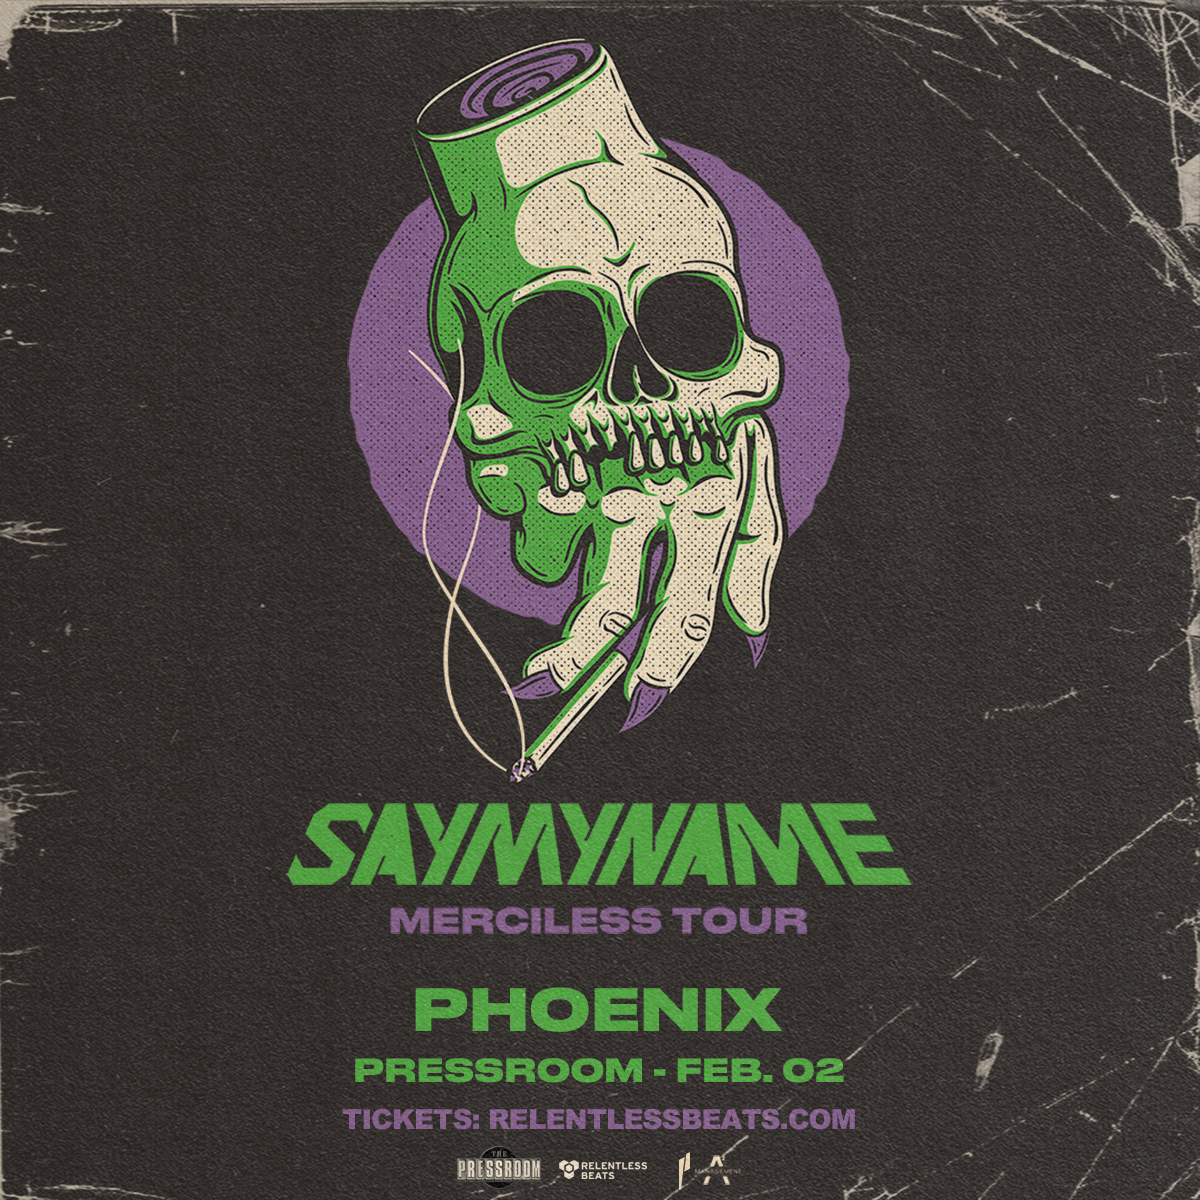 Flyer for SayMyName